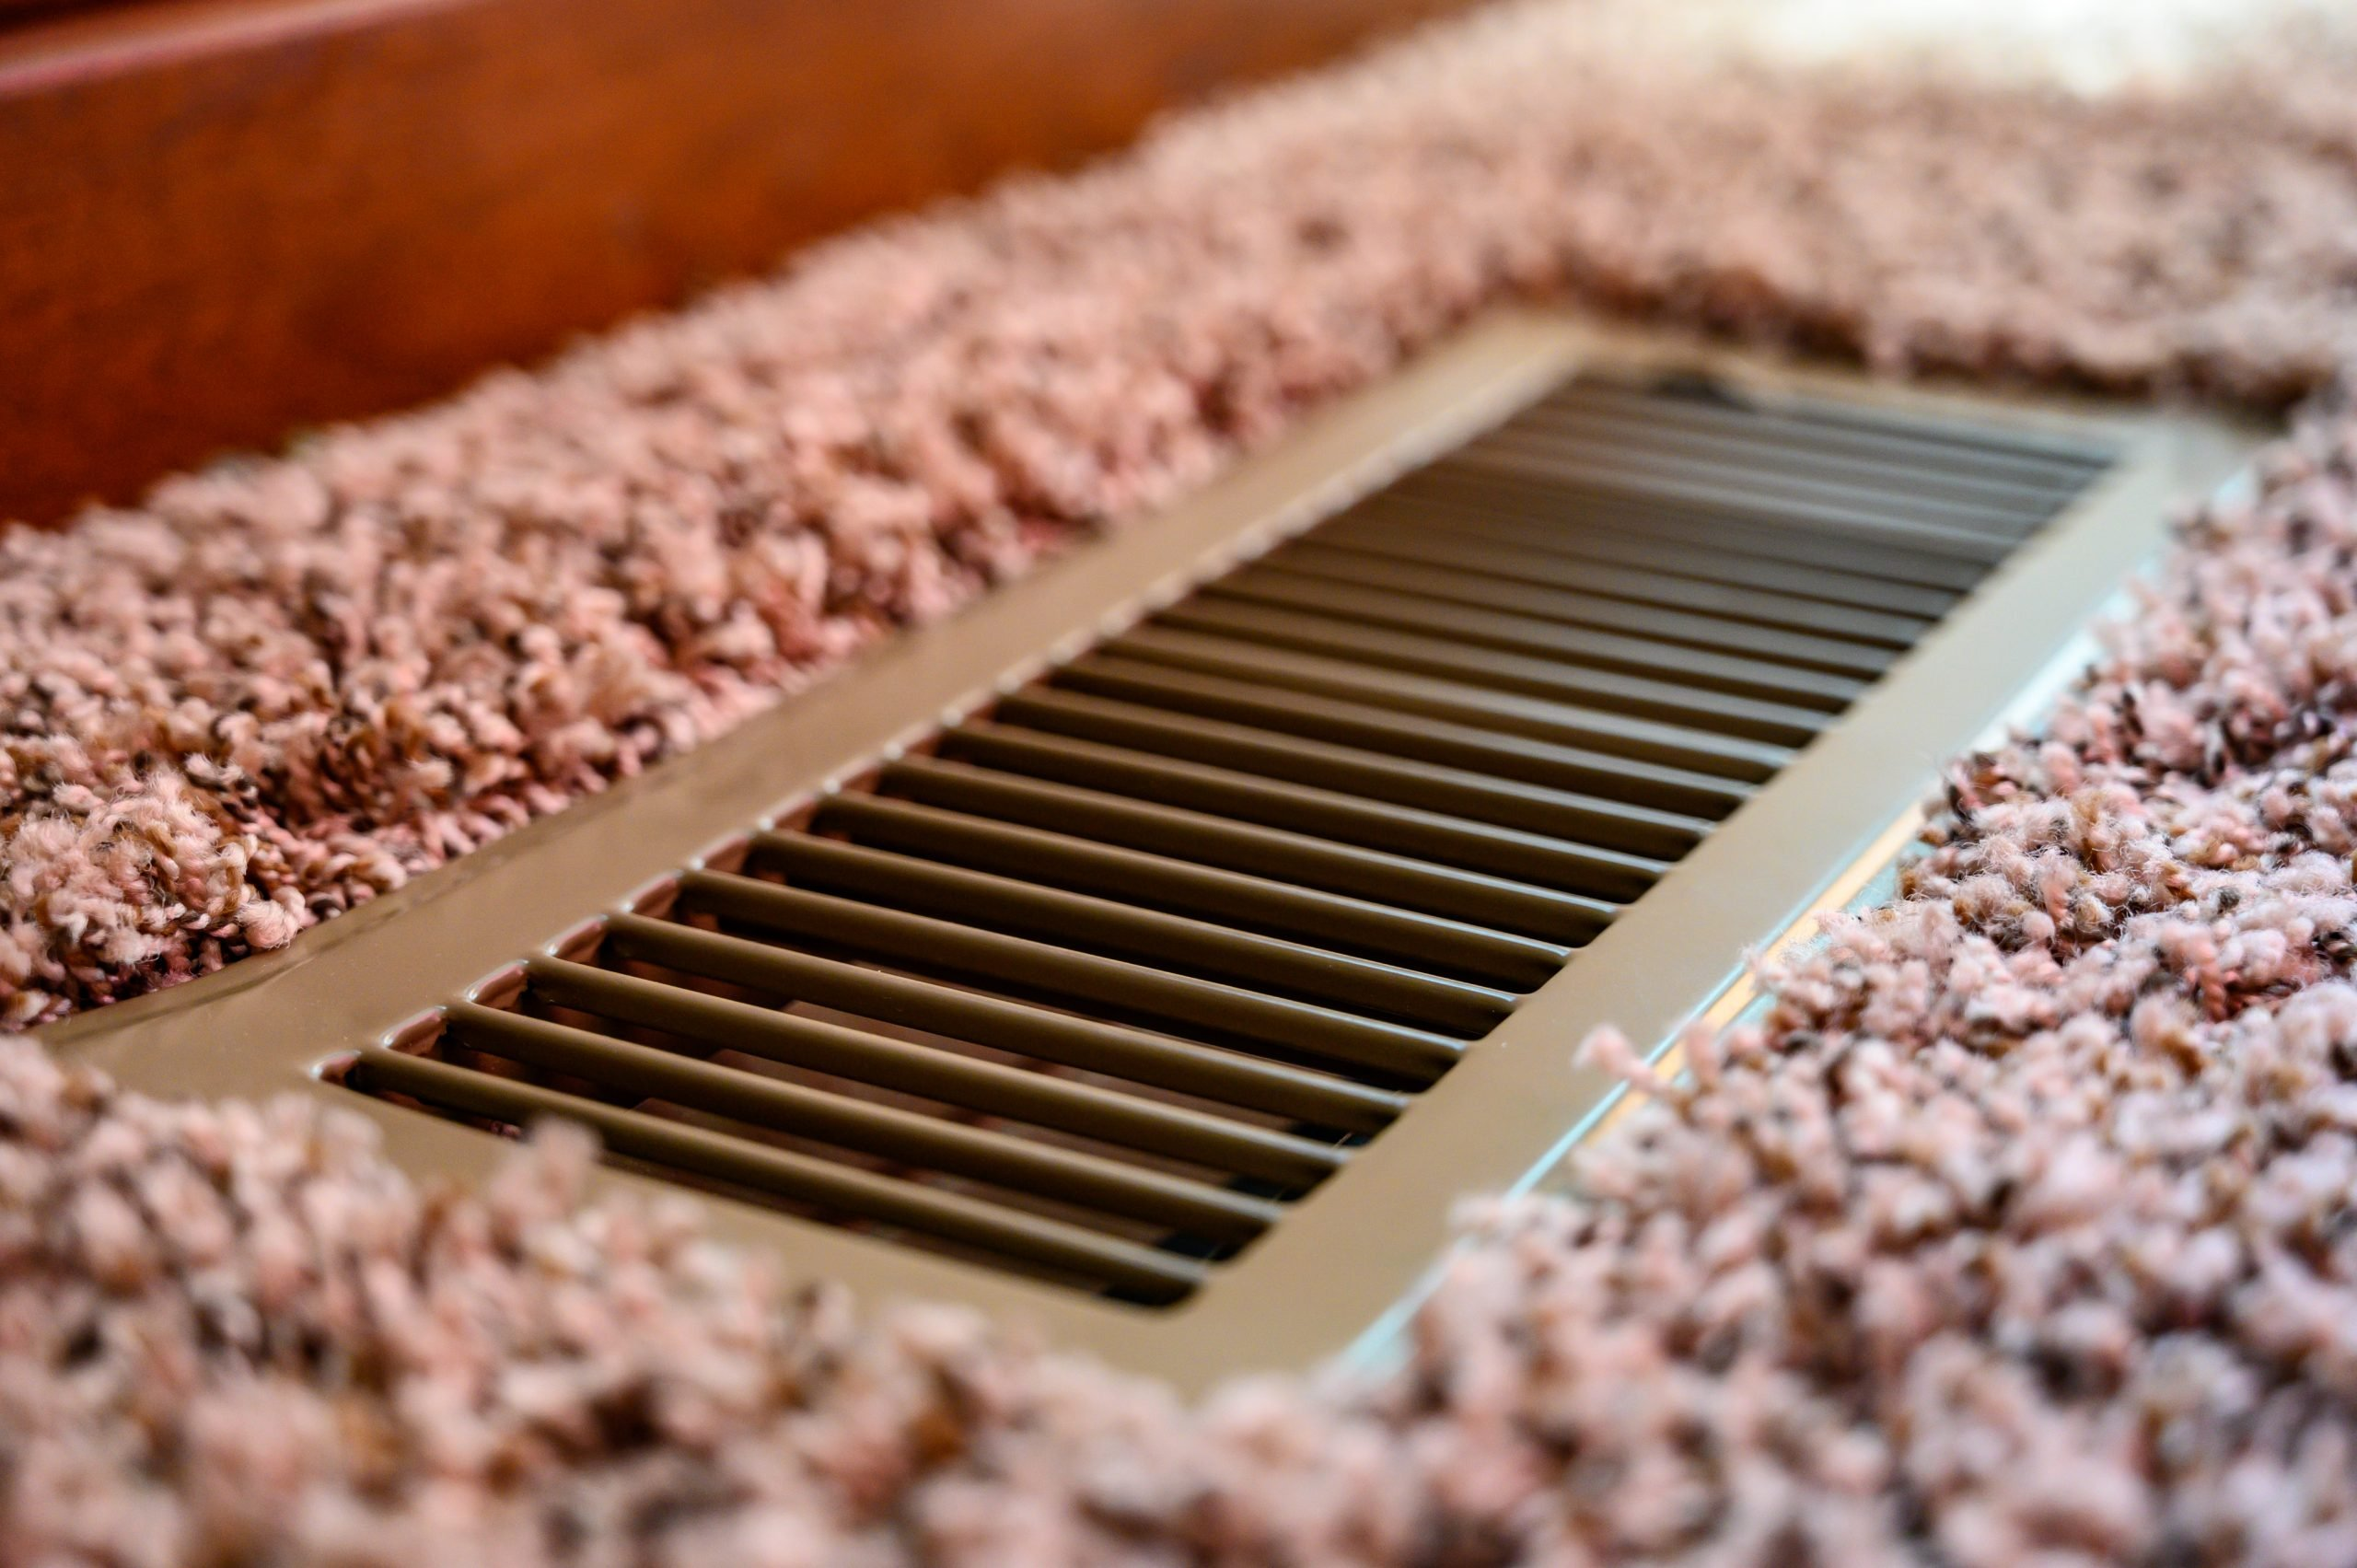 Focus,On,Floor,Vent,In,Room,With,Carpet